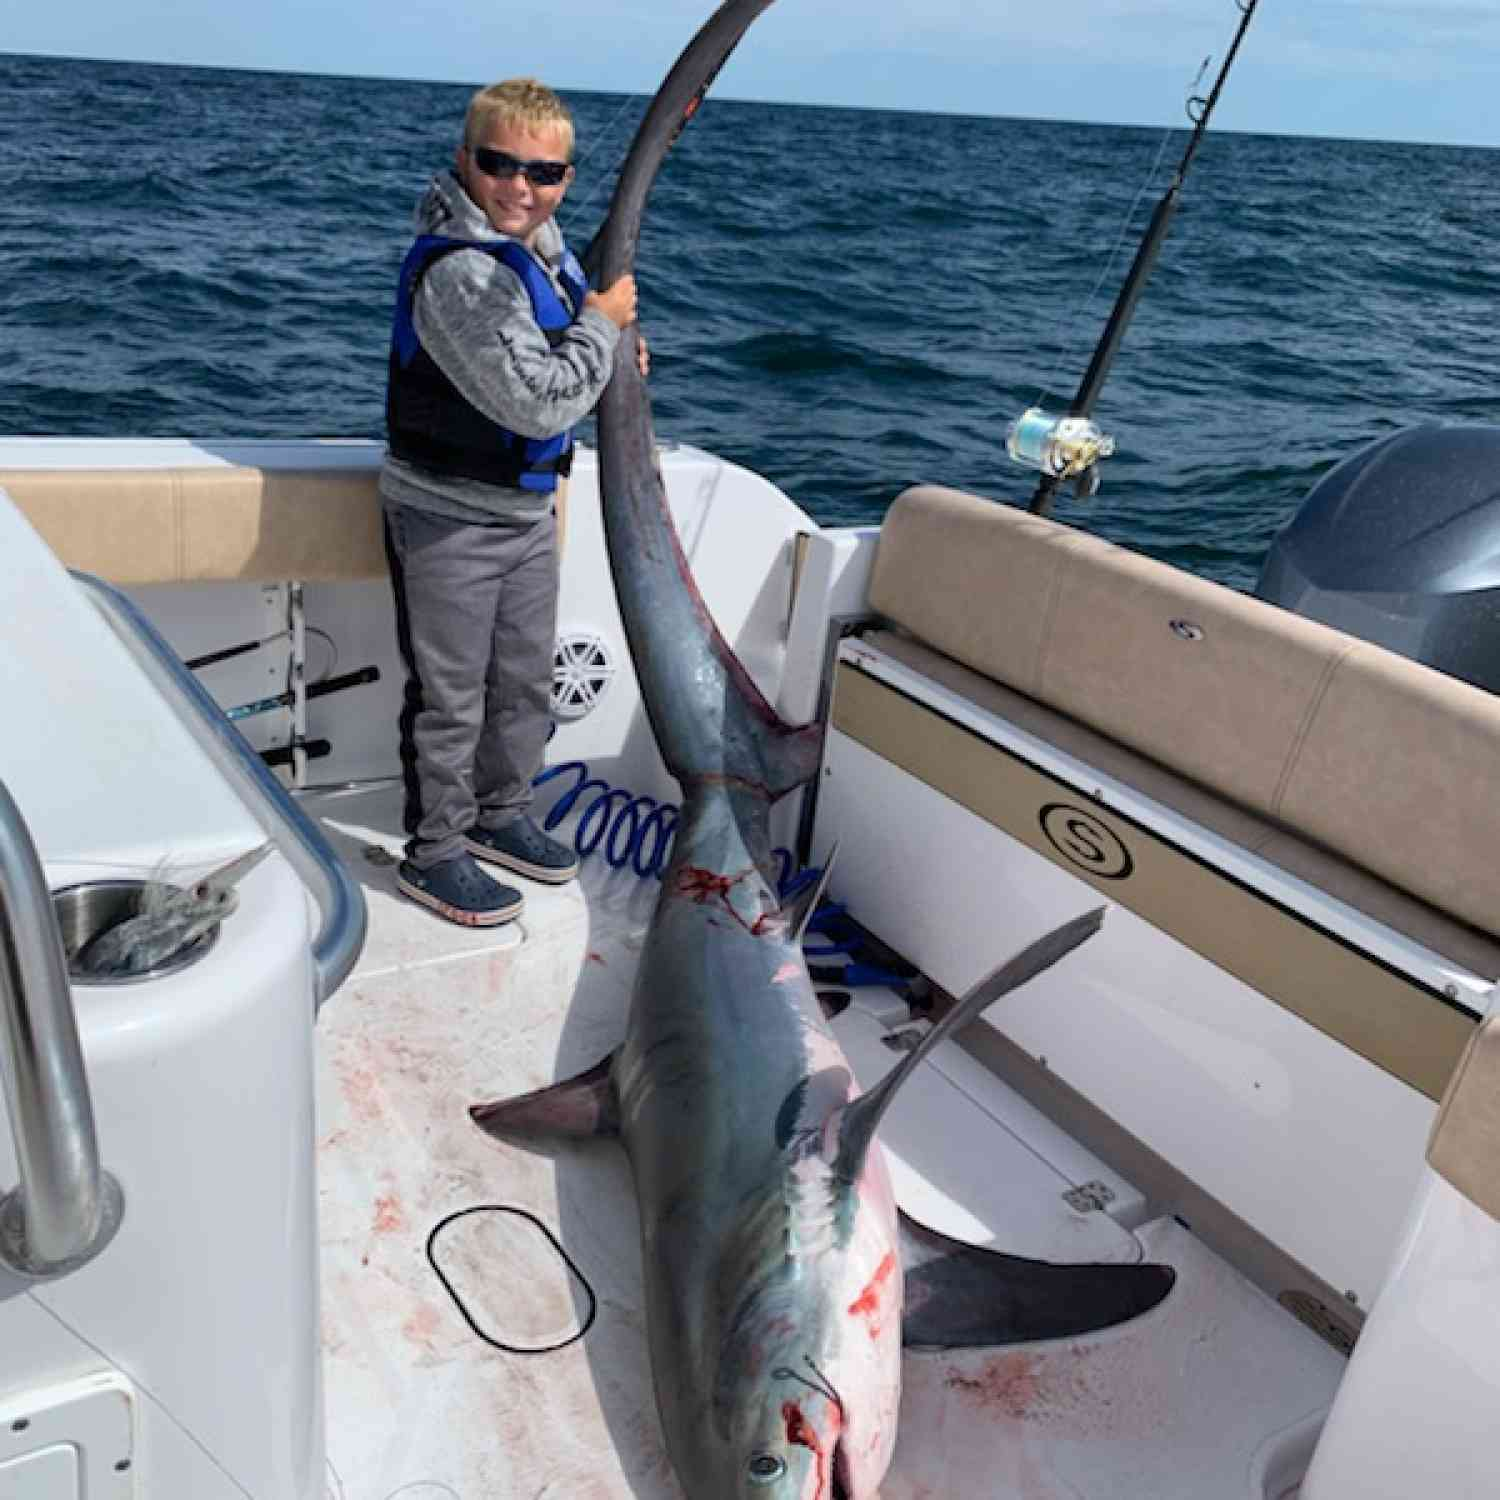 Title: Nate with thresher shark - On board their Sportsman Open 312 Center Console - Location: Montauk. Participating in the Photo Contest #SportsmanSeptember2019